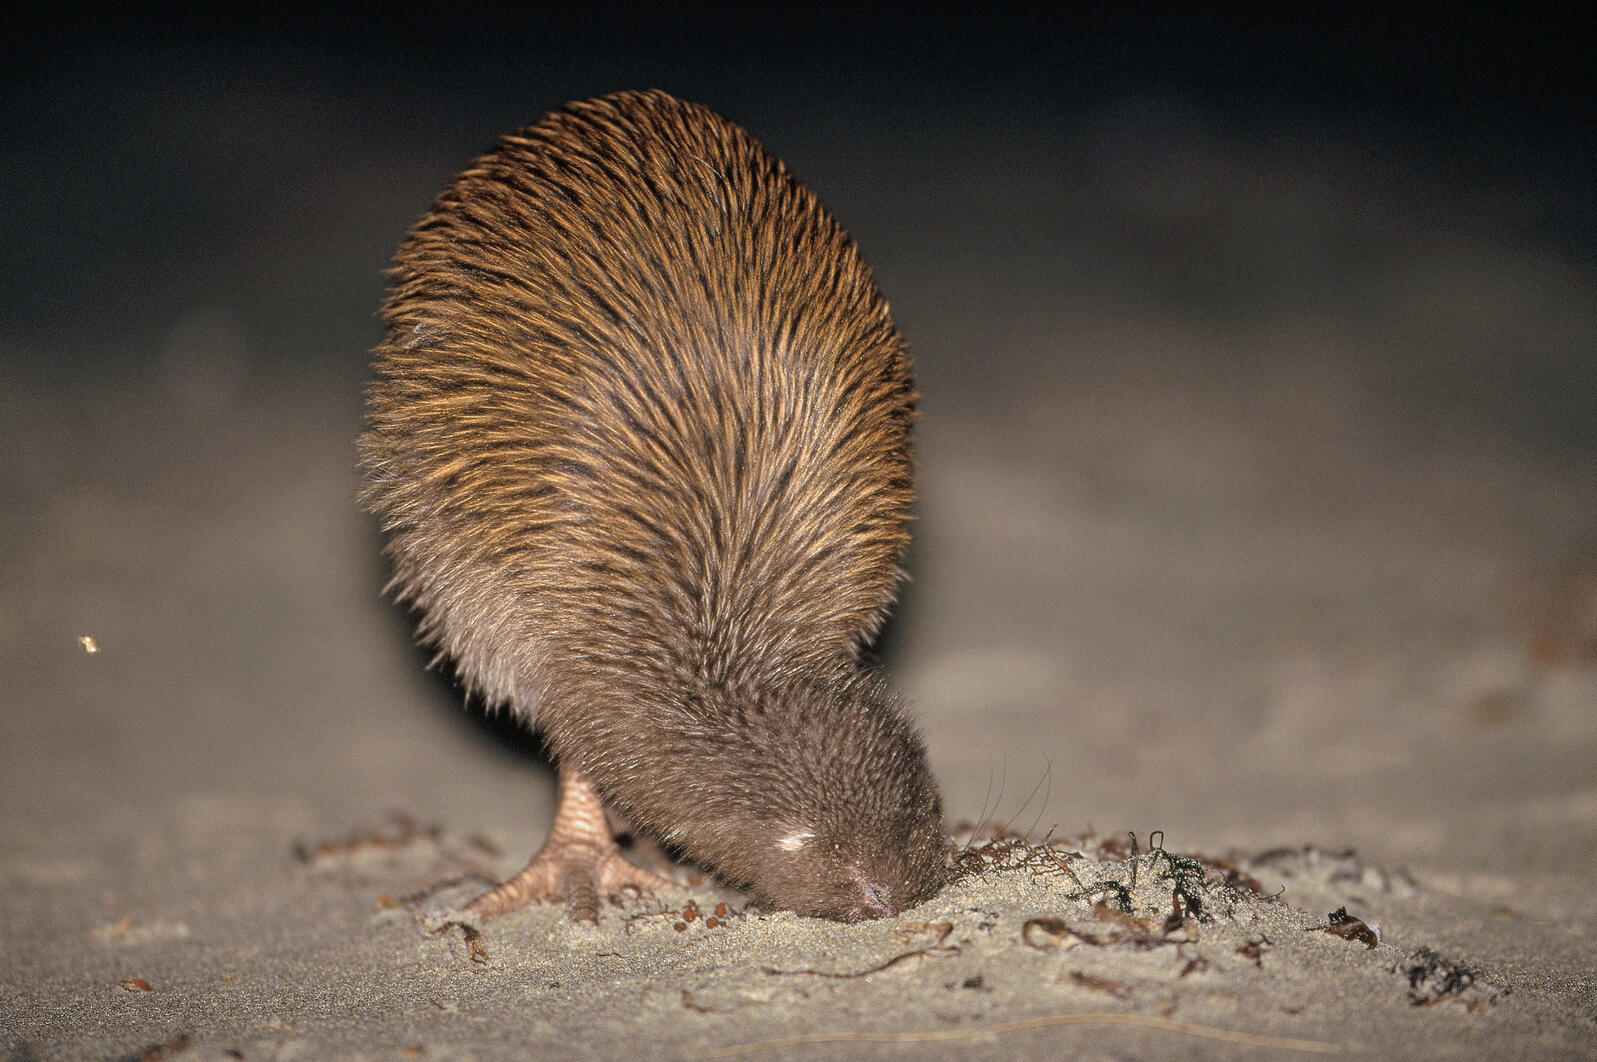 The usually elusive southern brown kiwi is easily seen on Stewart Island's Ocean Beach, where the birds appear in the evening to feed on invertebrates in the wrack line. Tui De Roy / Minden Pictures